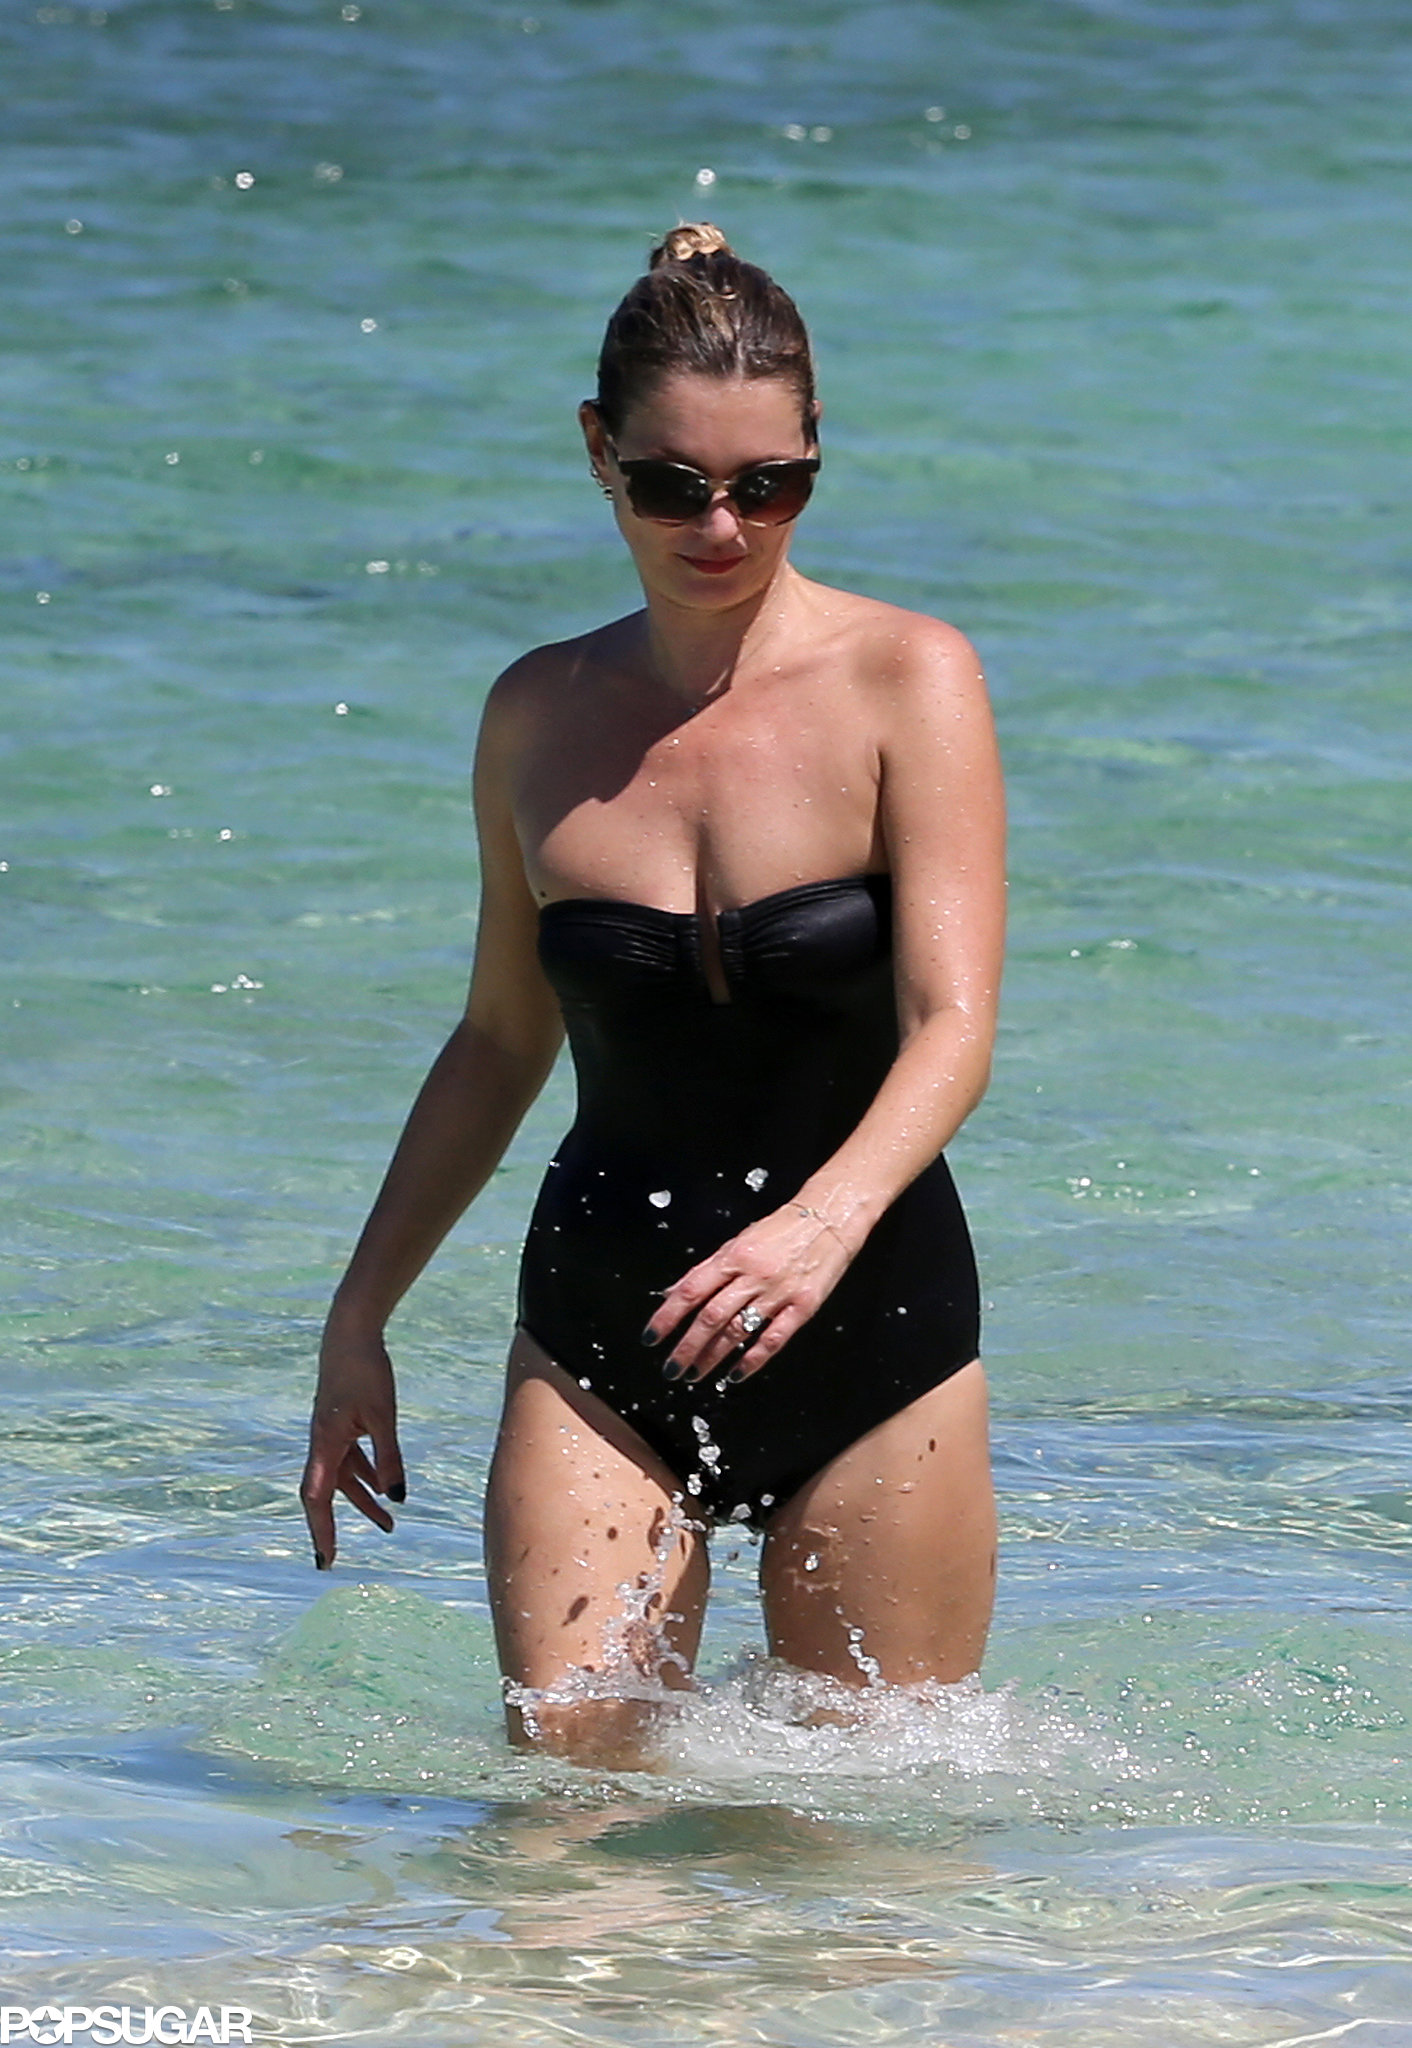 Kate Moss waded in the ocean.